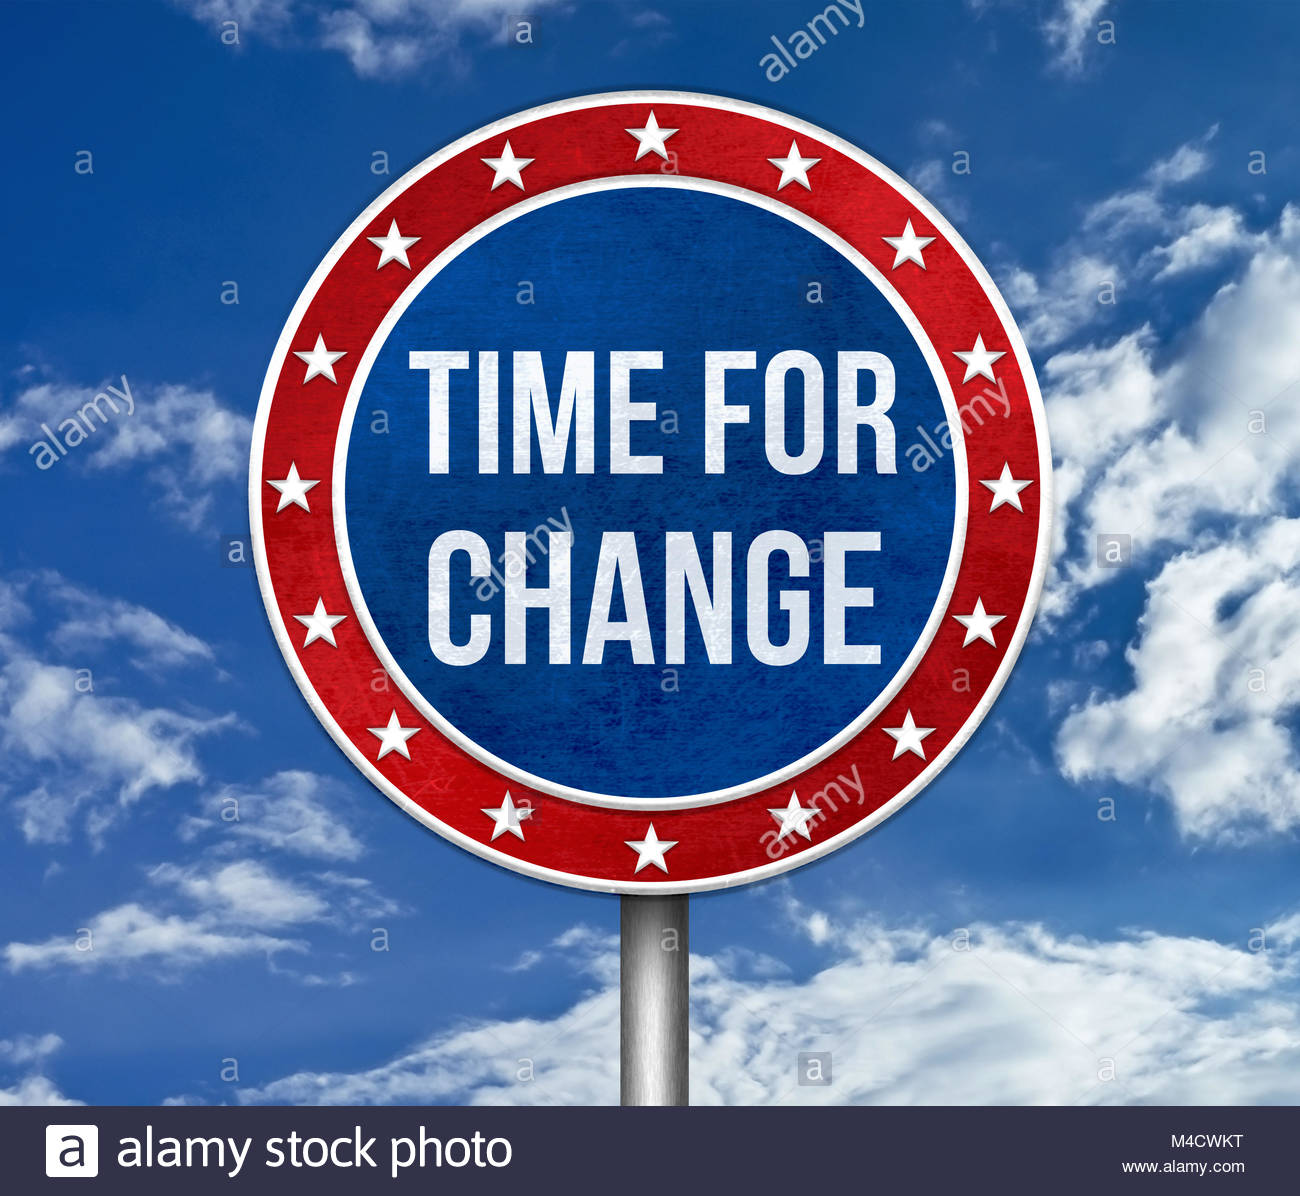 Time for Change - Stock Image